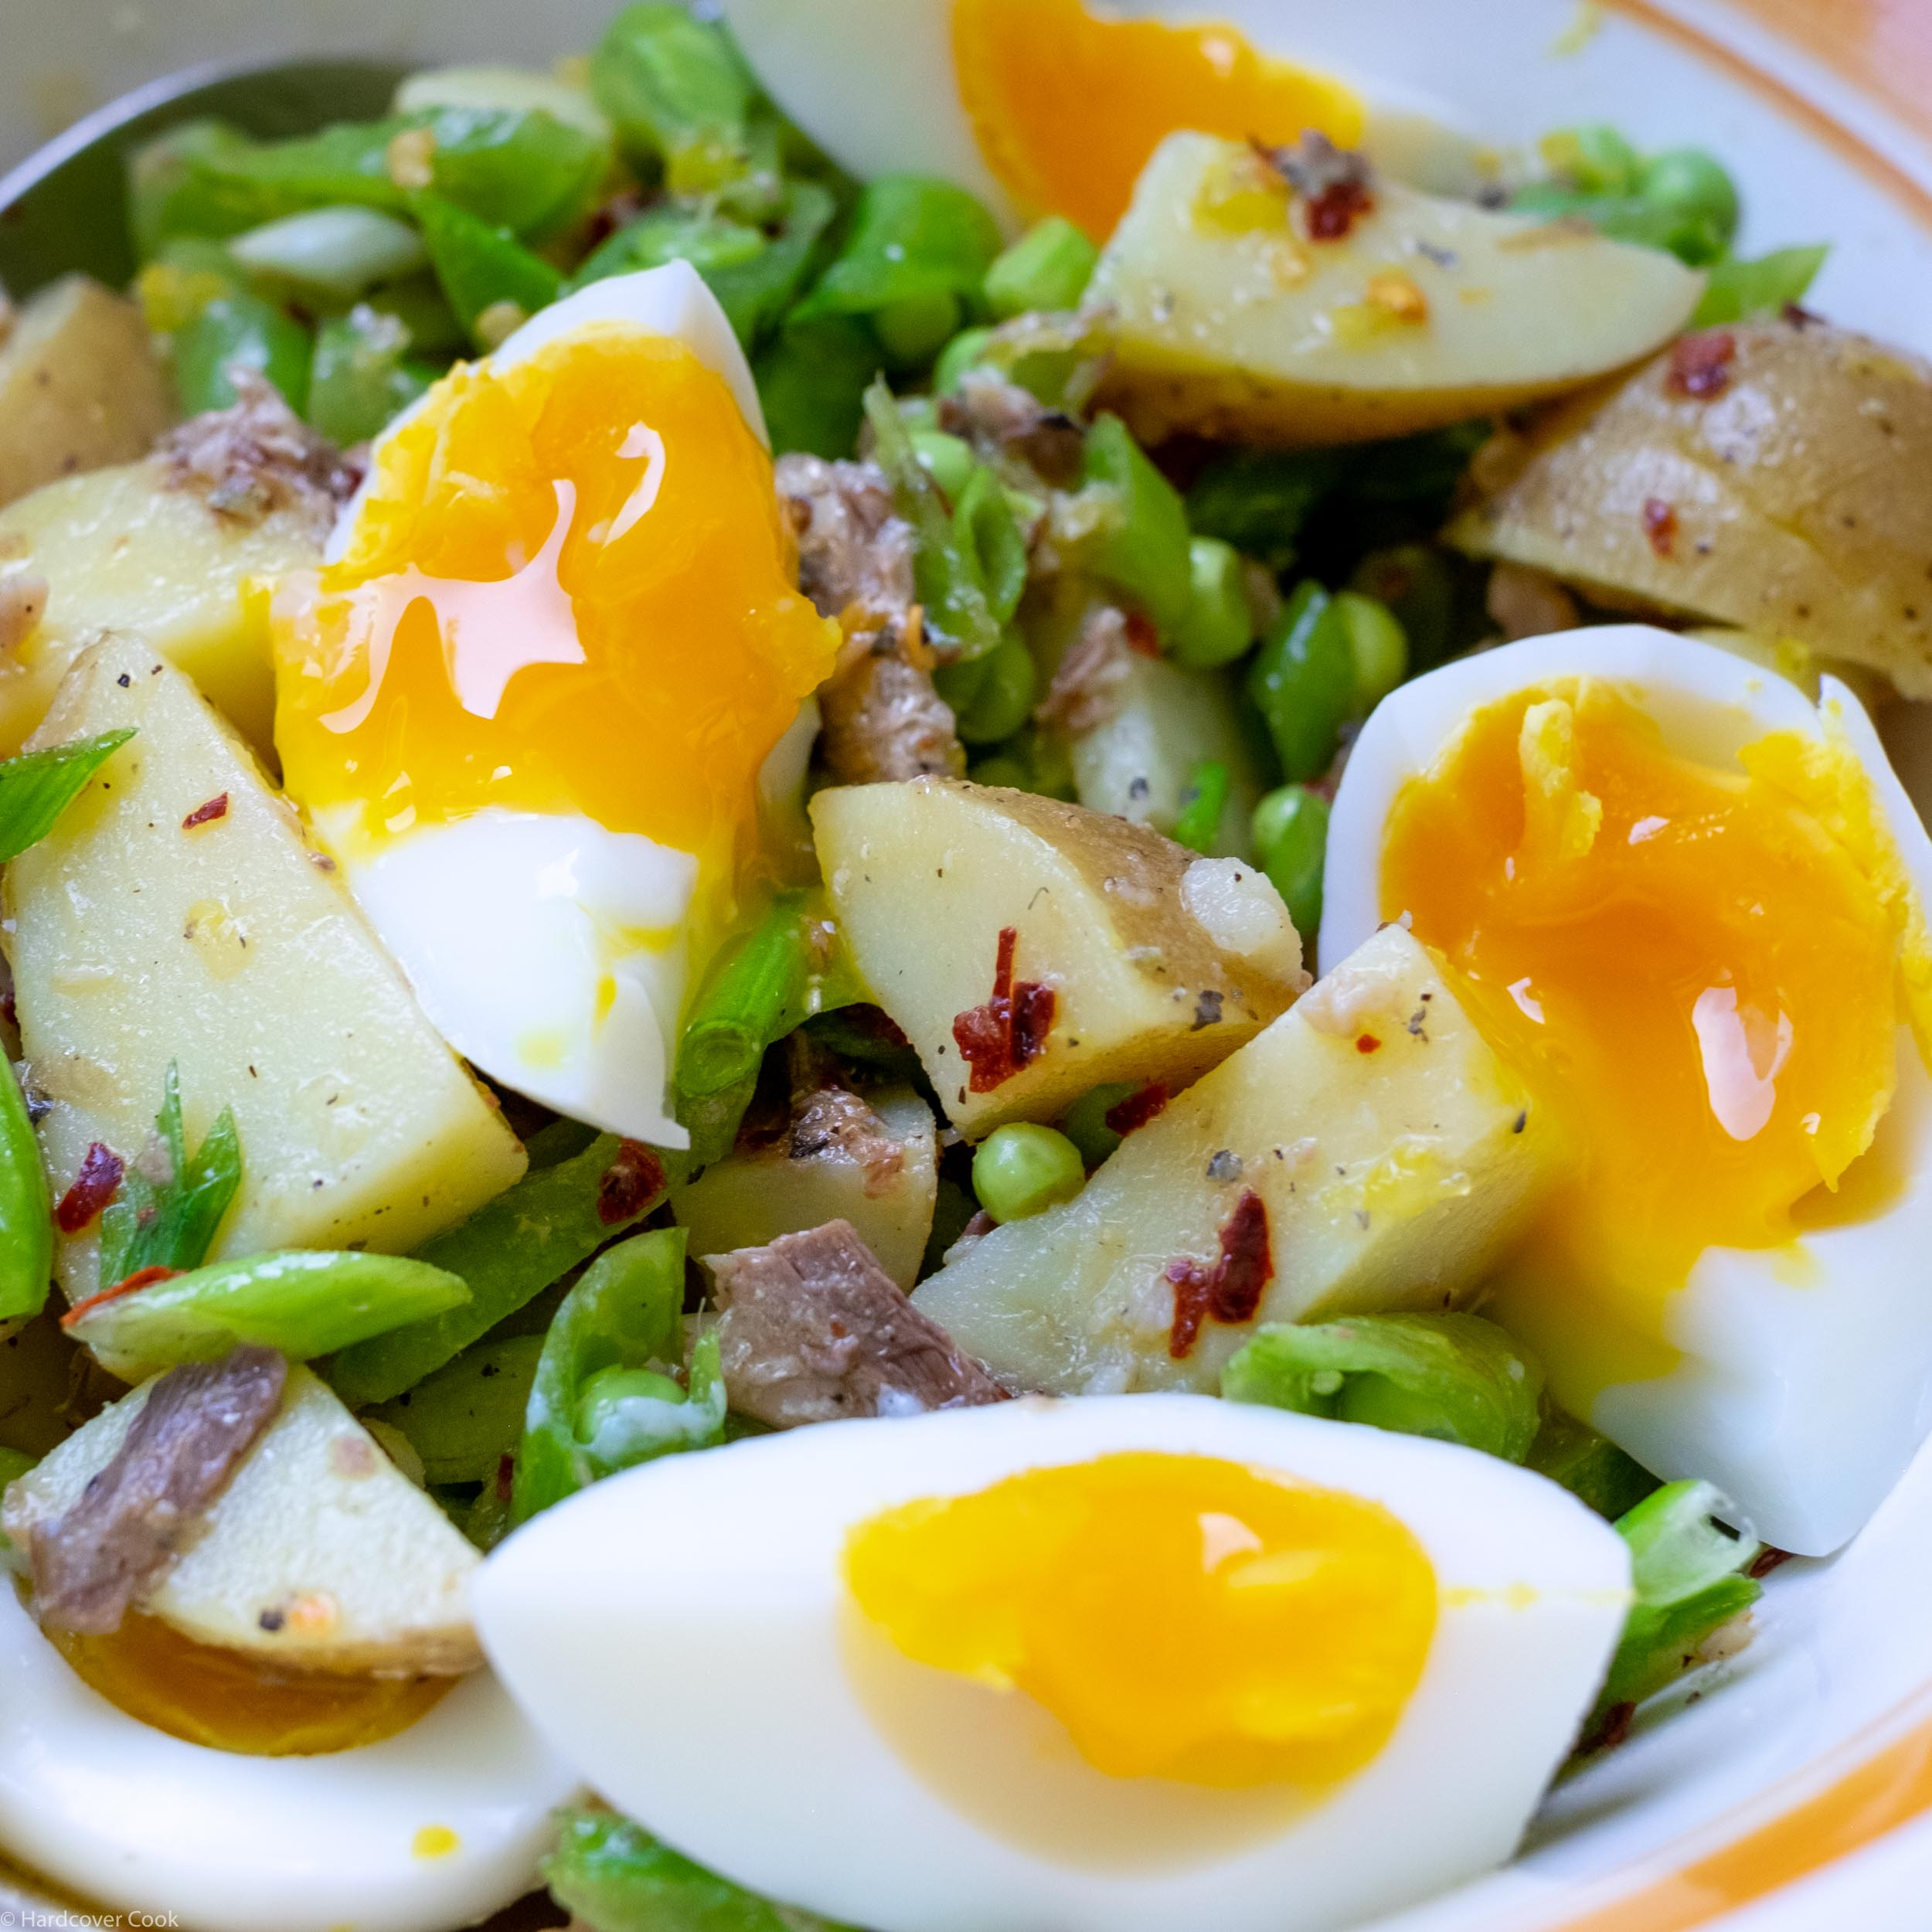 Sugar Snap Pea and New Potato Salad with Crumbled Eggs and Sardines from Six Seasons